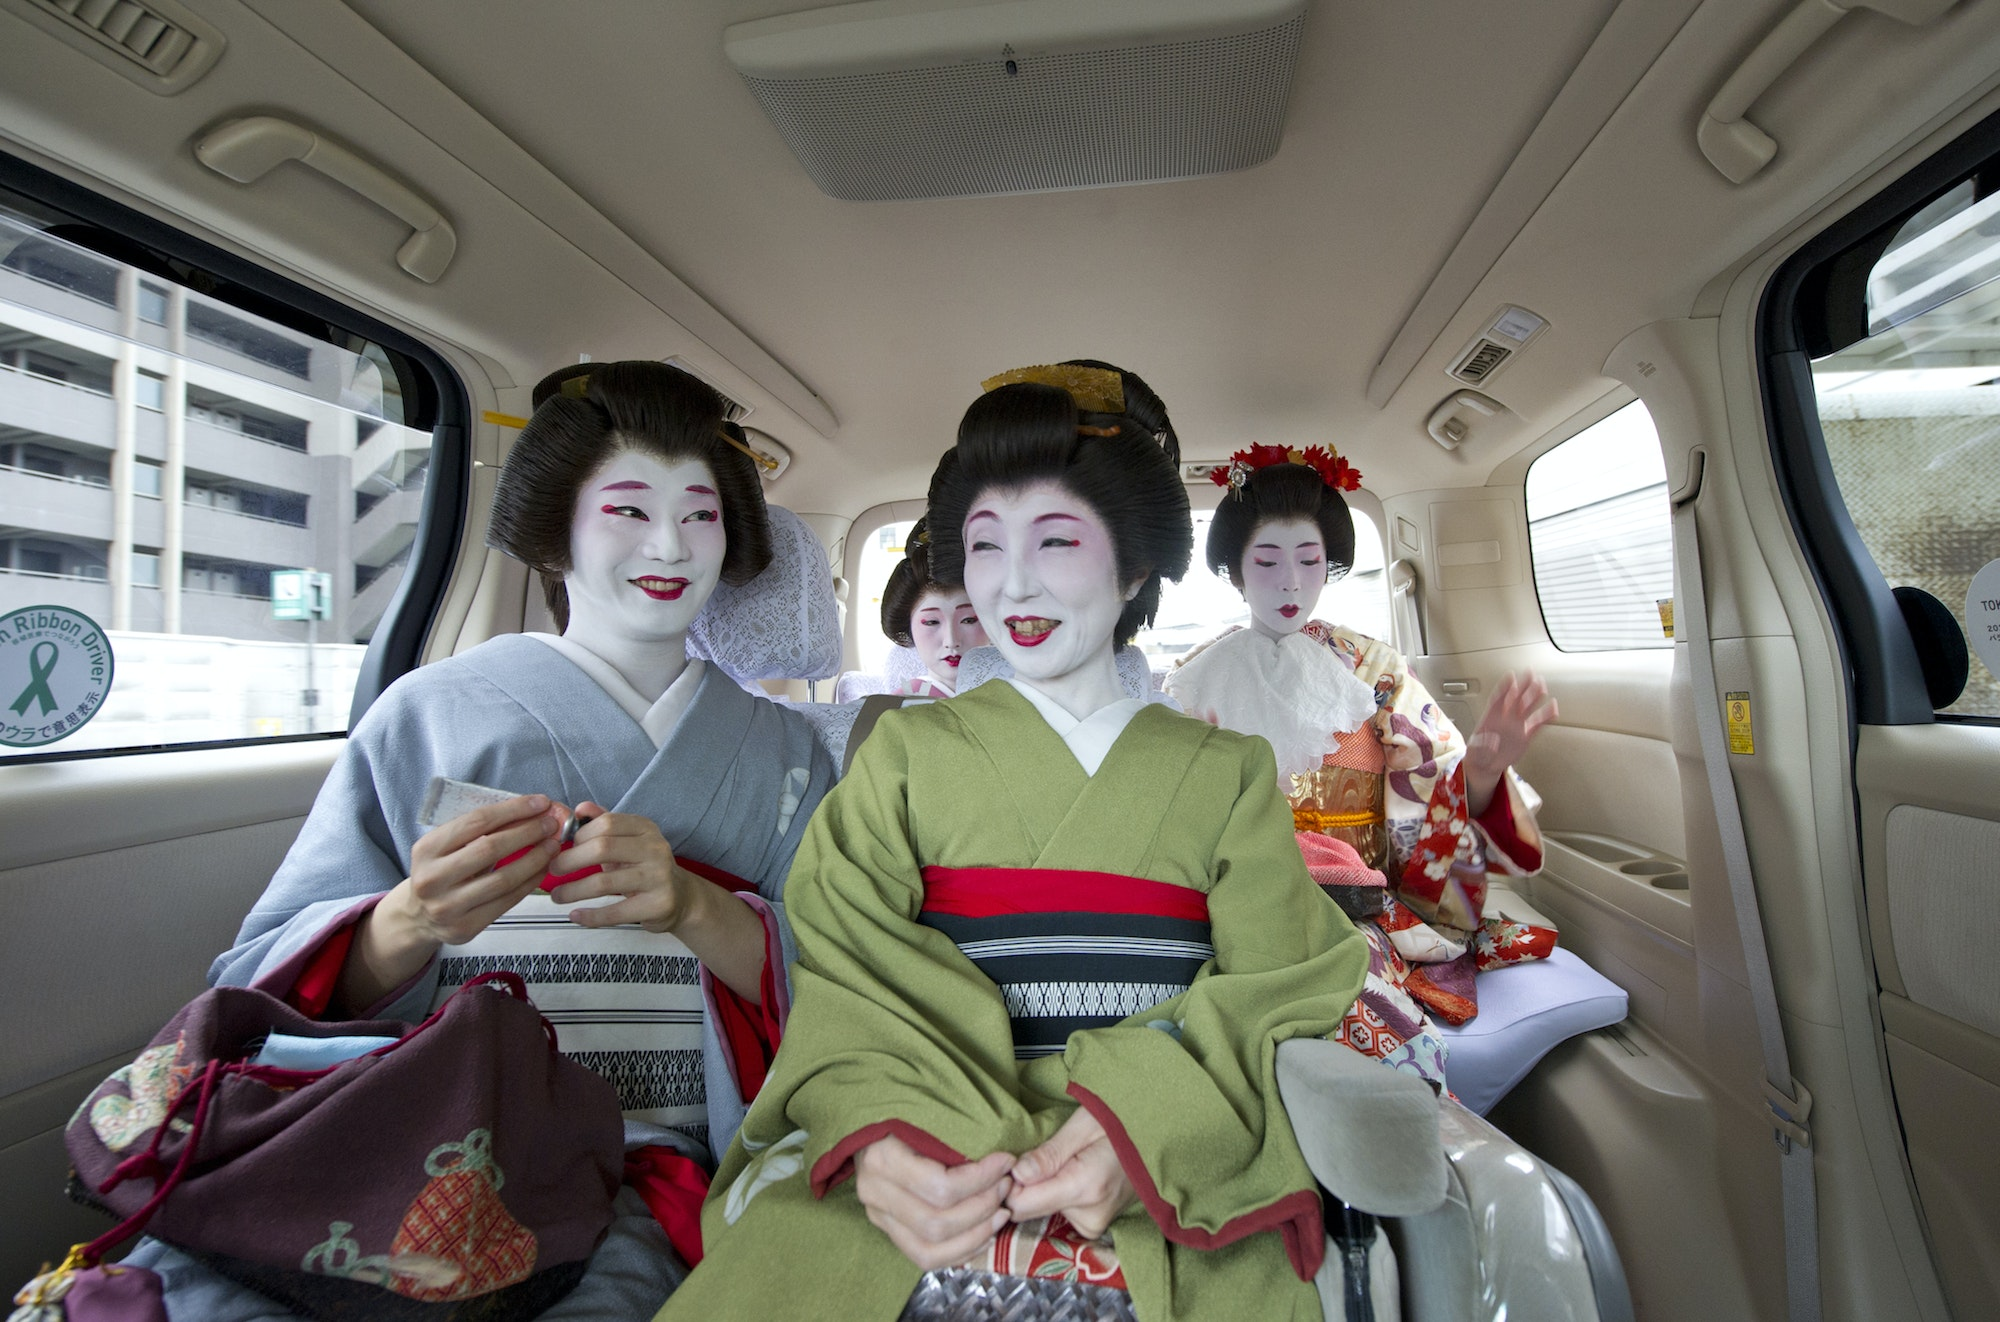 Japan's only male geisha, Eitaro (left), works to revive local geisha culture in Tokyo's Omori district.